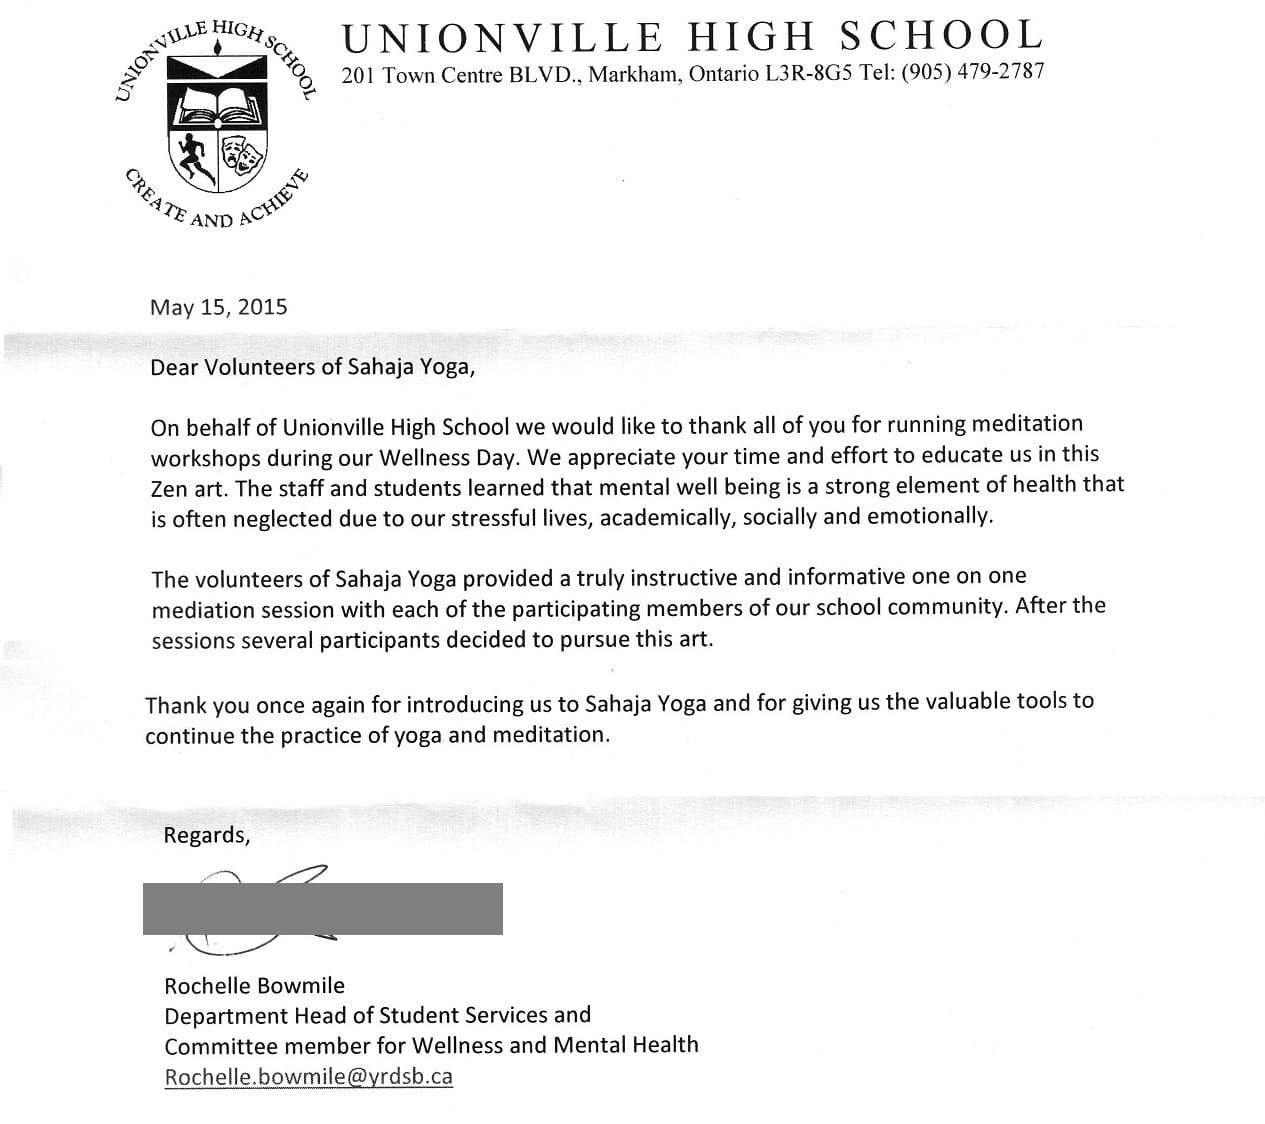 Appreciation Letter from Unionsville Highschool _Markham-WEB